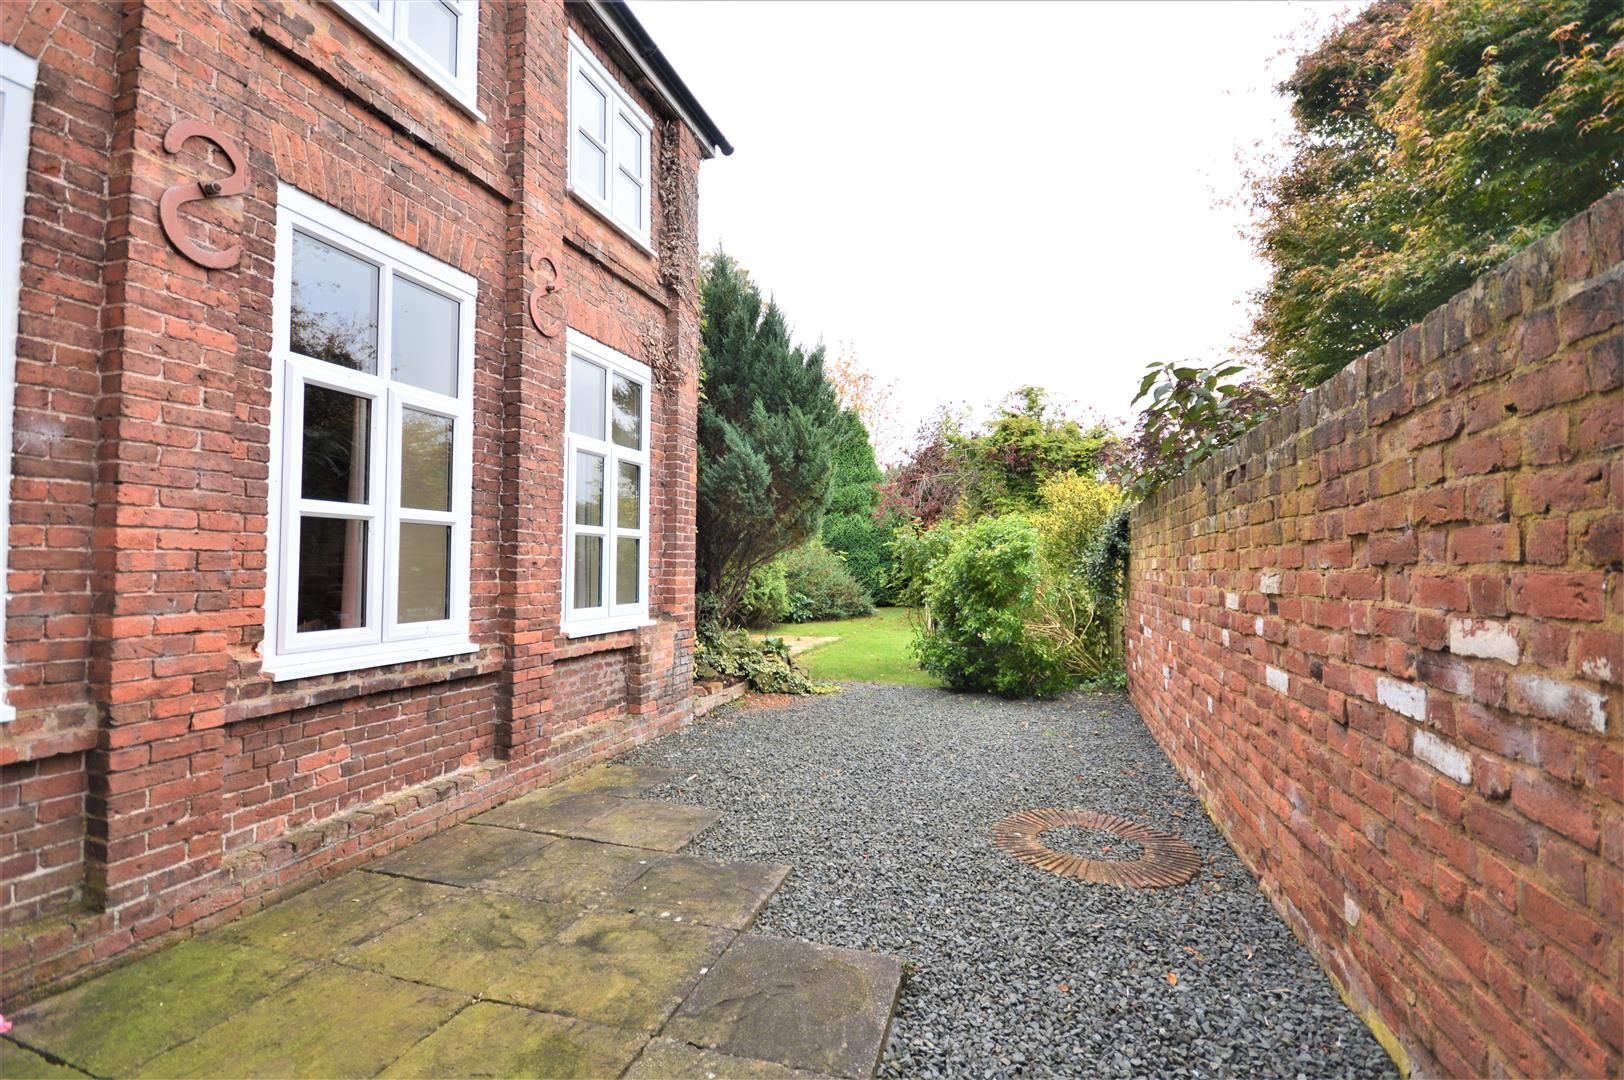 4 bed semi-detached for sale in Nr Madley 19